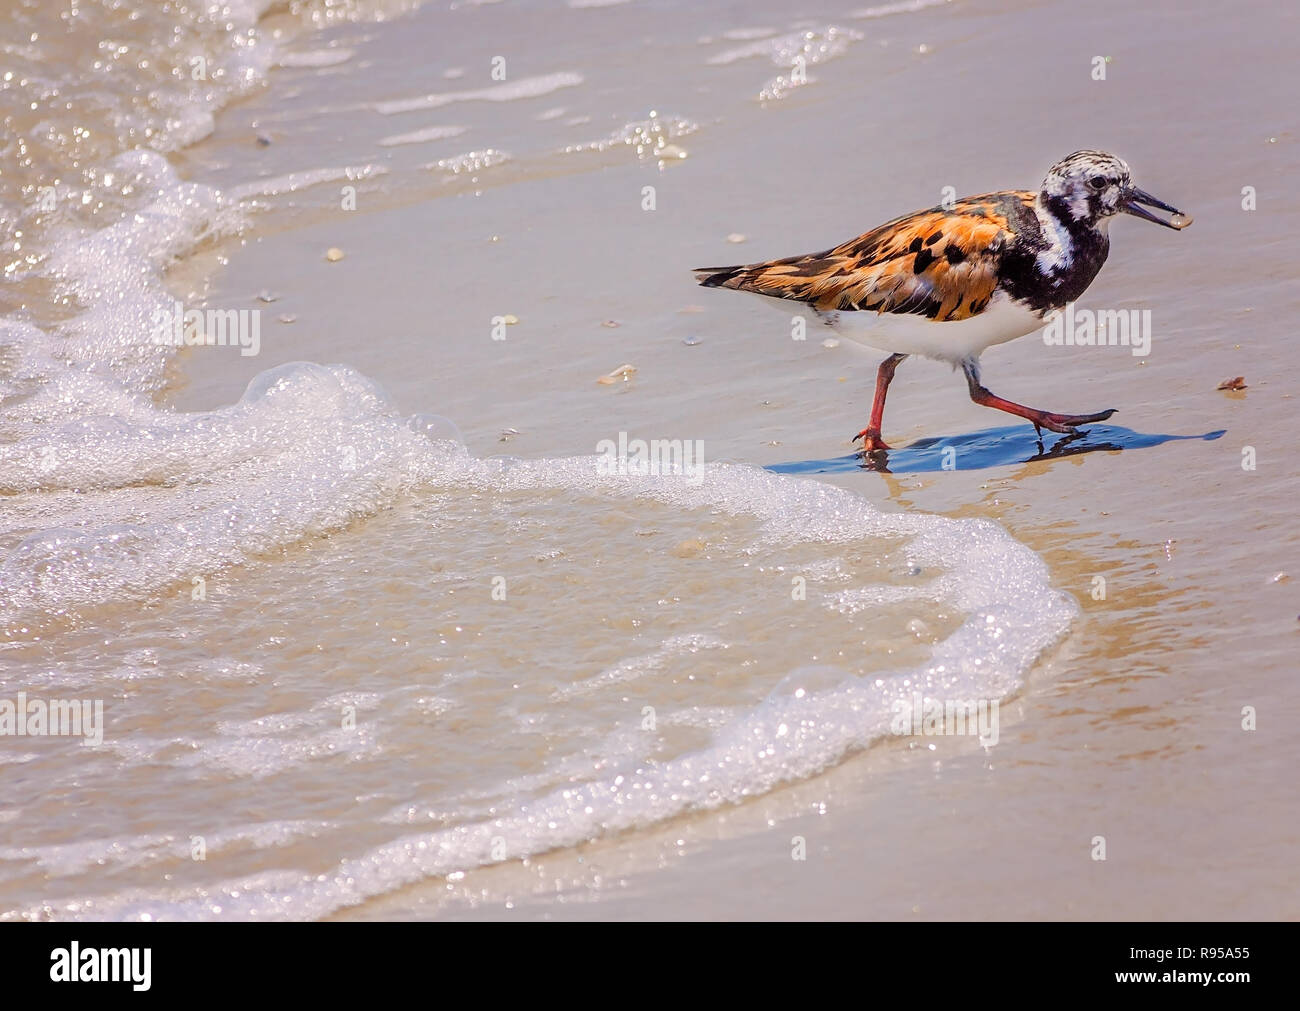 A ruddy turnstone, a type of sandpiper, carries a seashell plucked from the surf, Aug. 23, 2018, on Mustang Island in Port Aransas, Texas. - Stock Image